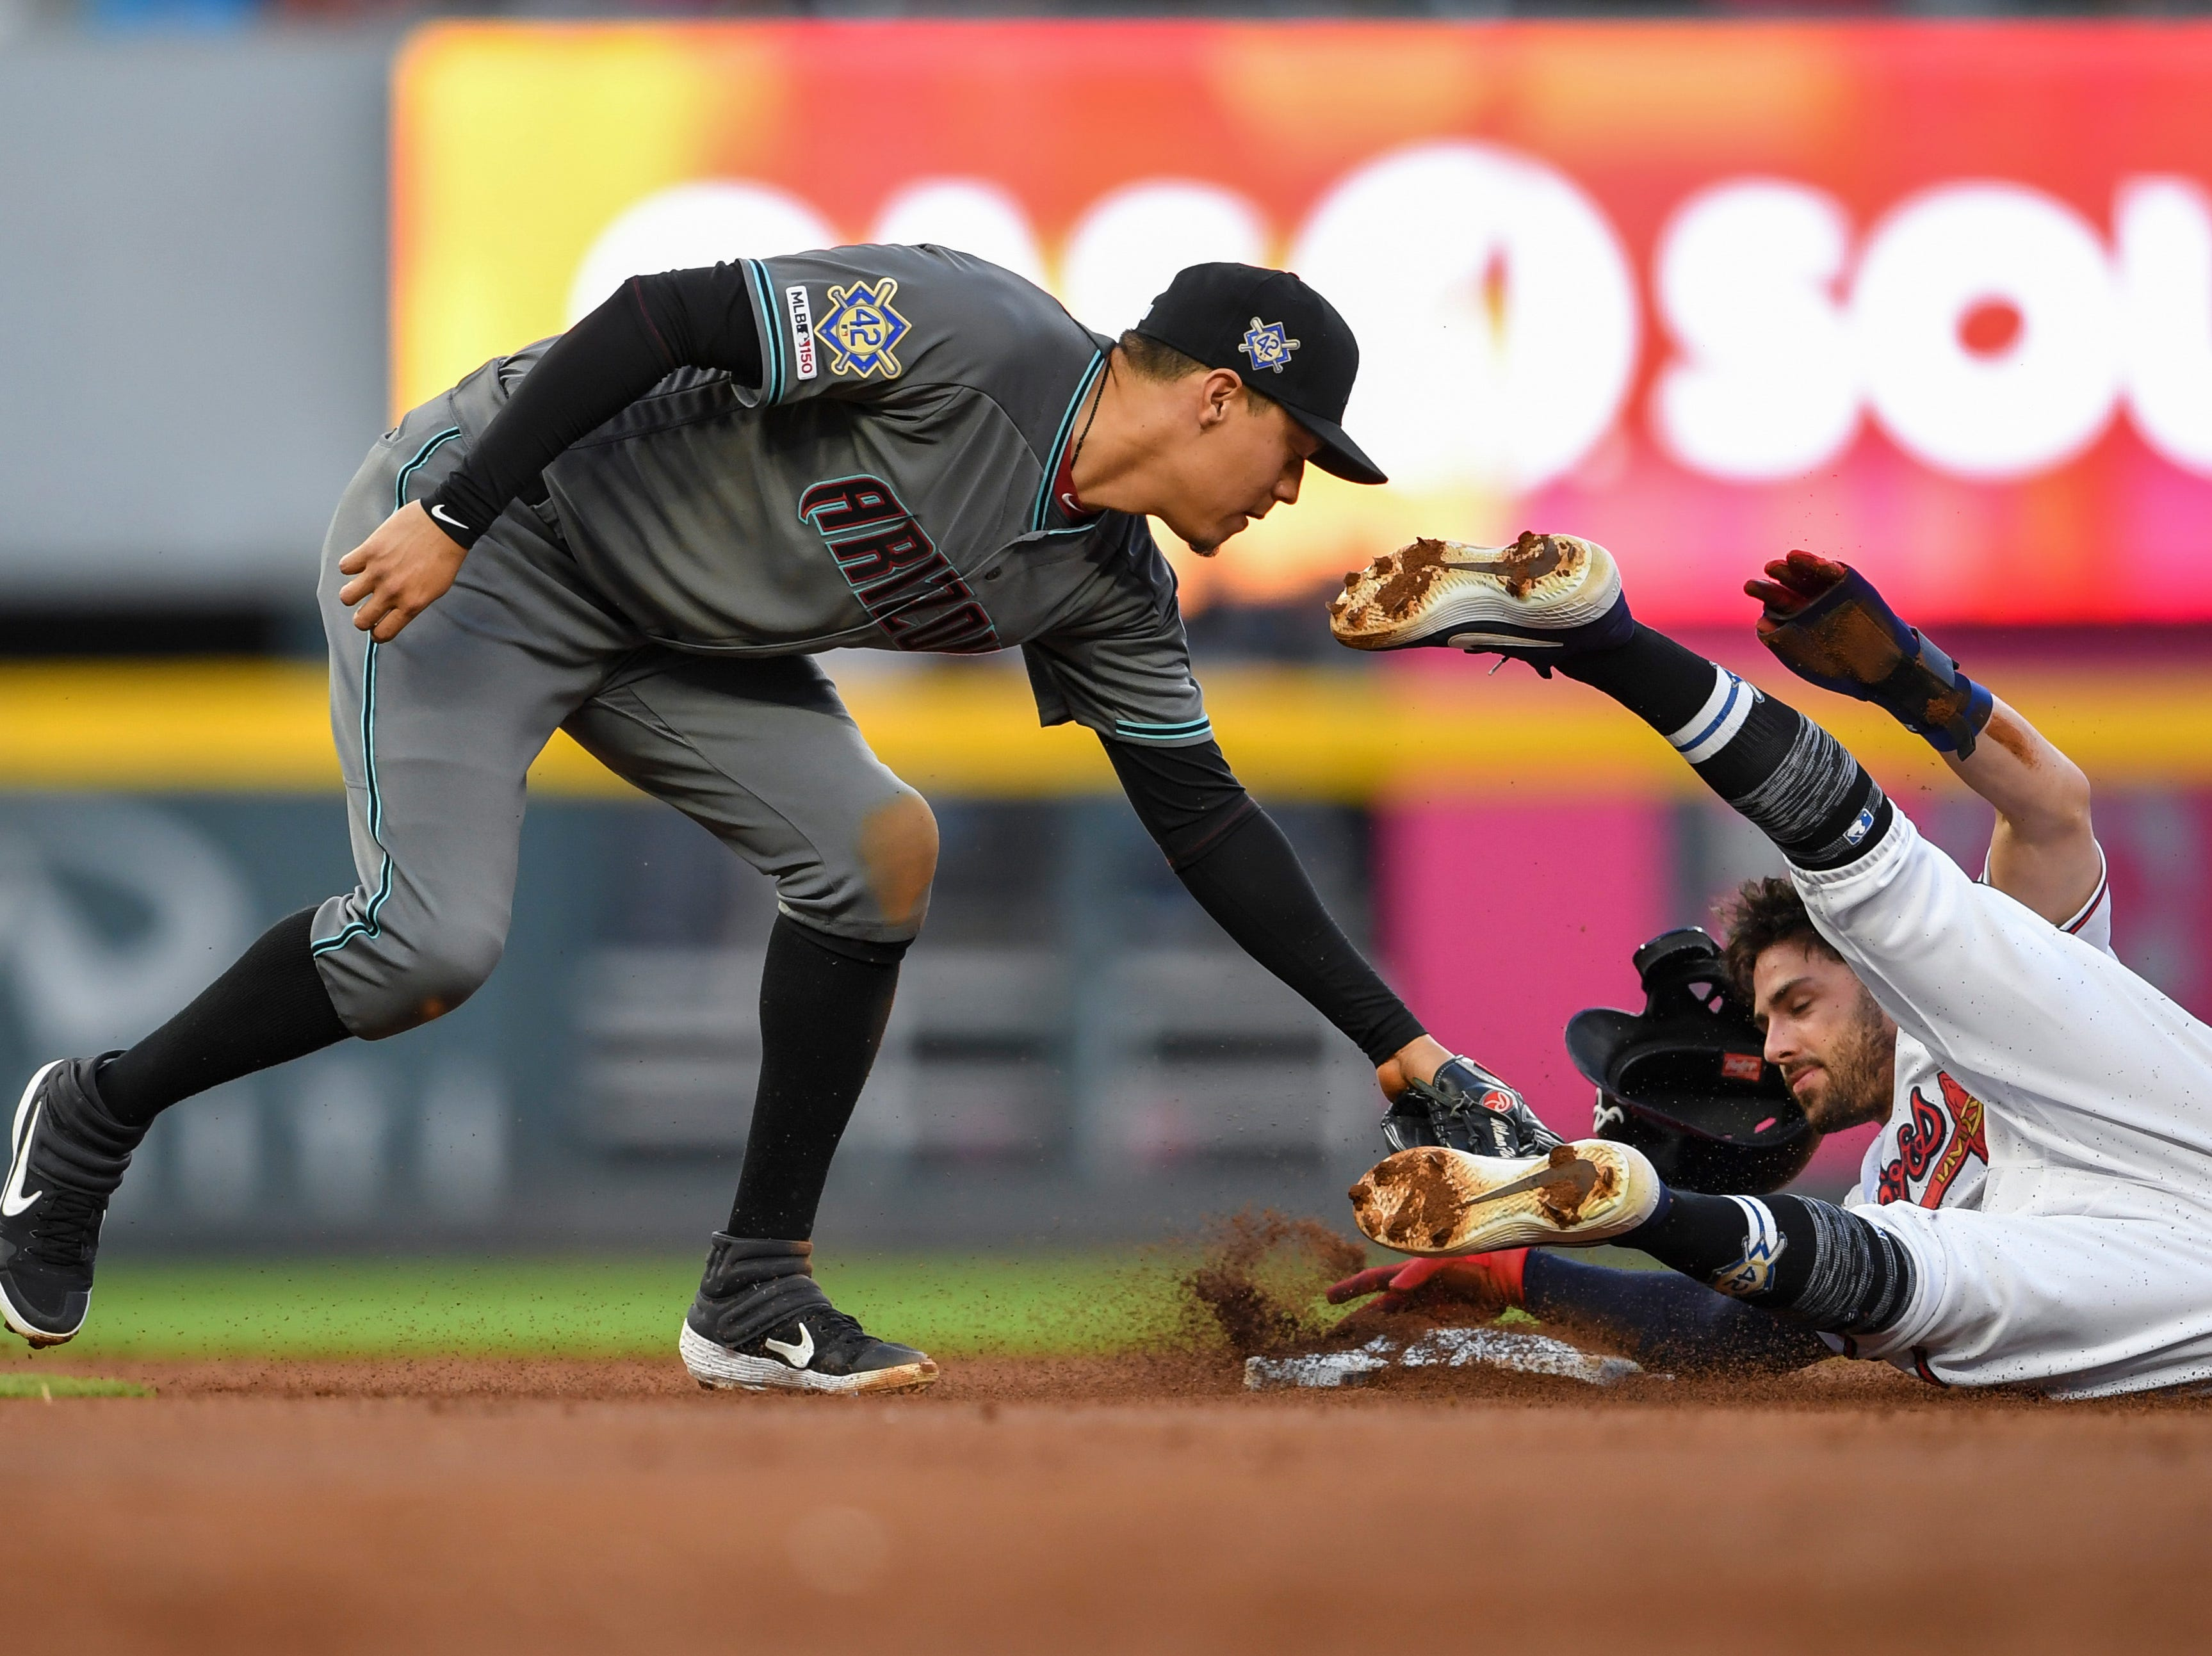 Apr 16, 2019; Atlanta, GA, USA; Arizona Diamondbacks second baseman Wilmer Flores (41) tags out Atlanta Braves shortstop Dansby Swanson (7) on a steal attempt during the second inning at SunTrust Park. Mandatory Credit: Dale Zanine-USA TODAY Sports